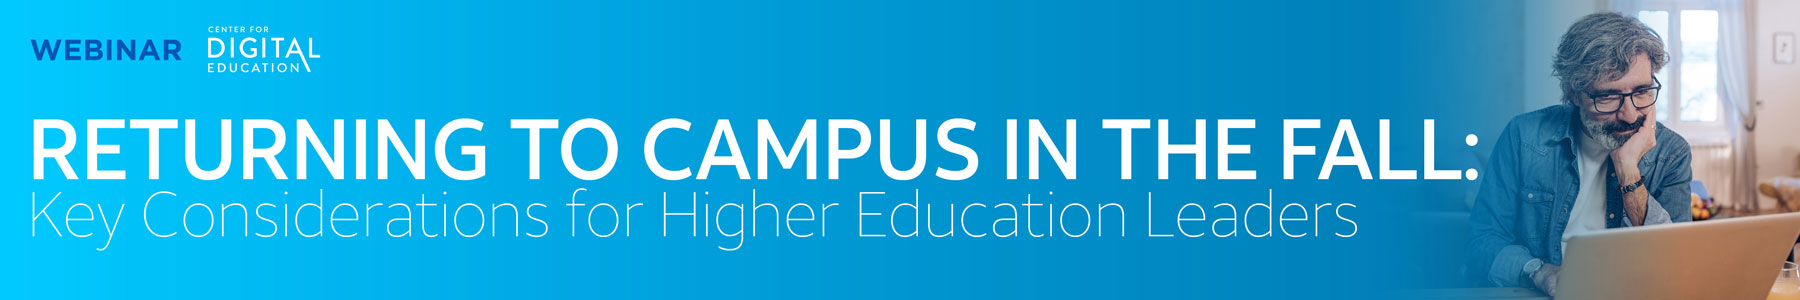 Returning to Campus in the Fall: Key Considerations for Higher Education Leaders